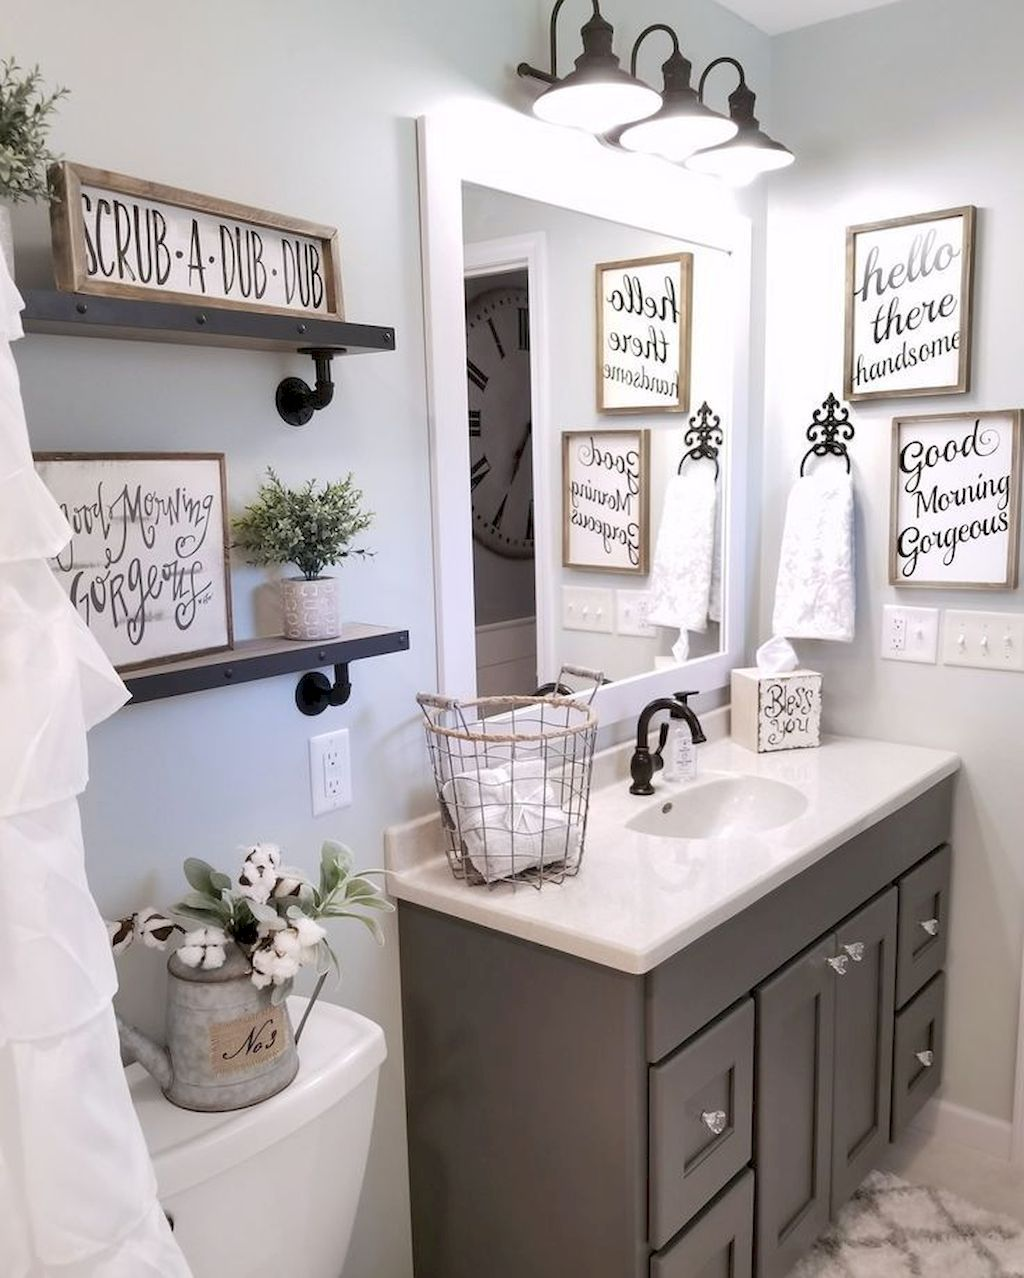 bathroom decorating ideas gorgeous 110 spectacular farmhouse bathroom decor ideas  https://roomadness.com/2017/12/15/110-spectacular-farmhouse-bathroom-decor- ideas/ UMEAOFE